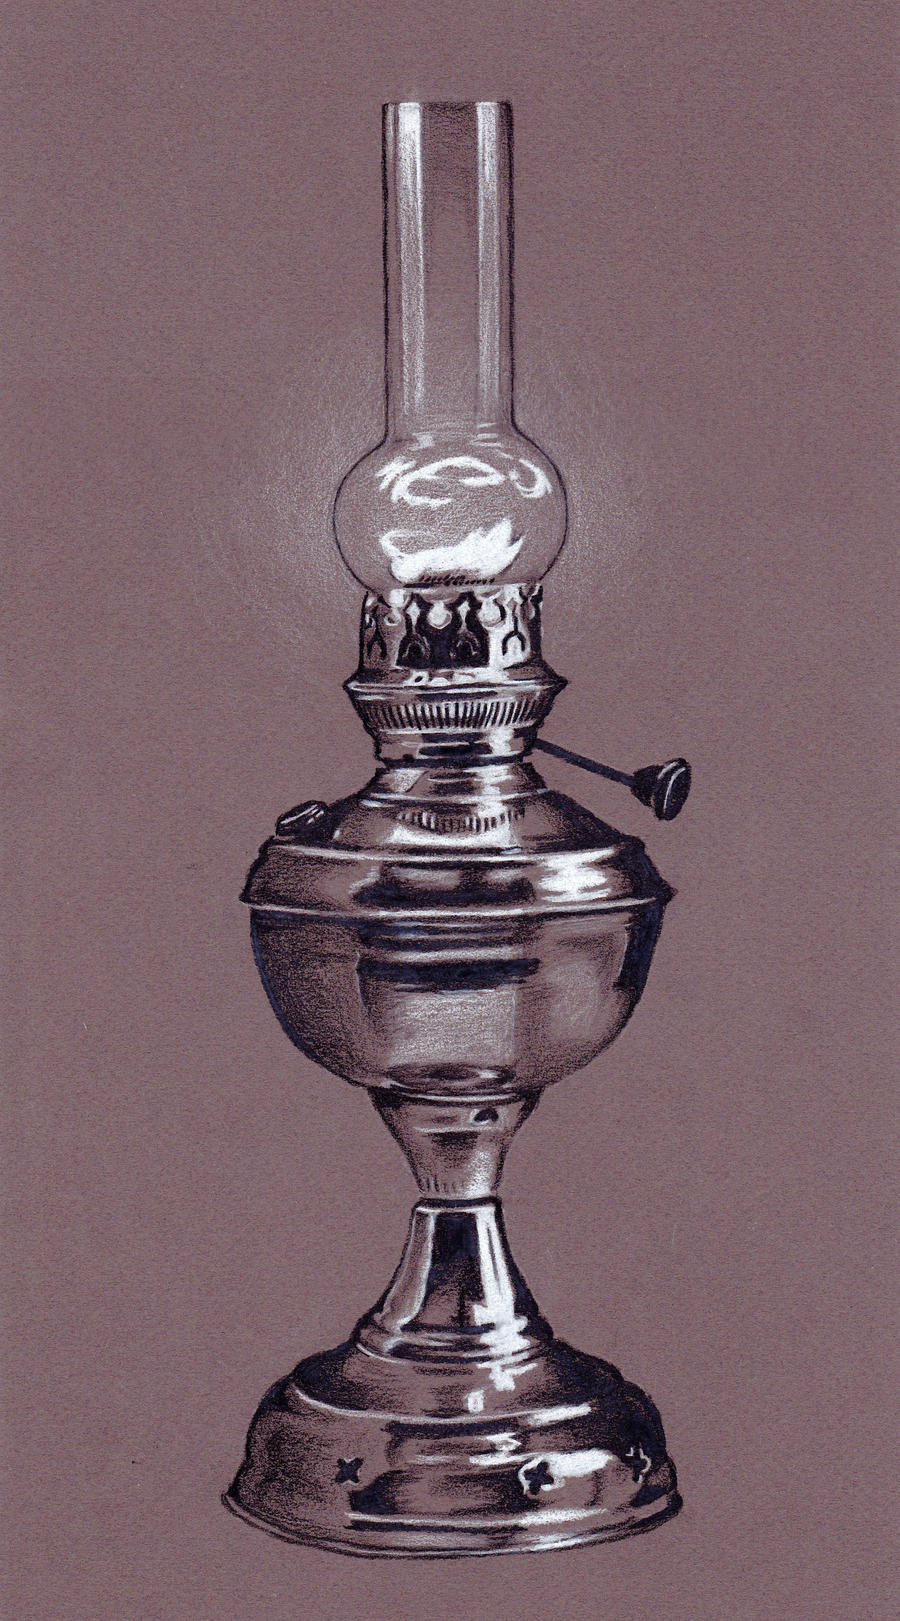 Exceptional Gas Lamp By RayMurphy Gas Lamp By RayMurphy